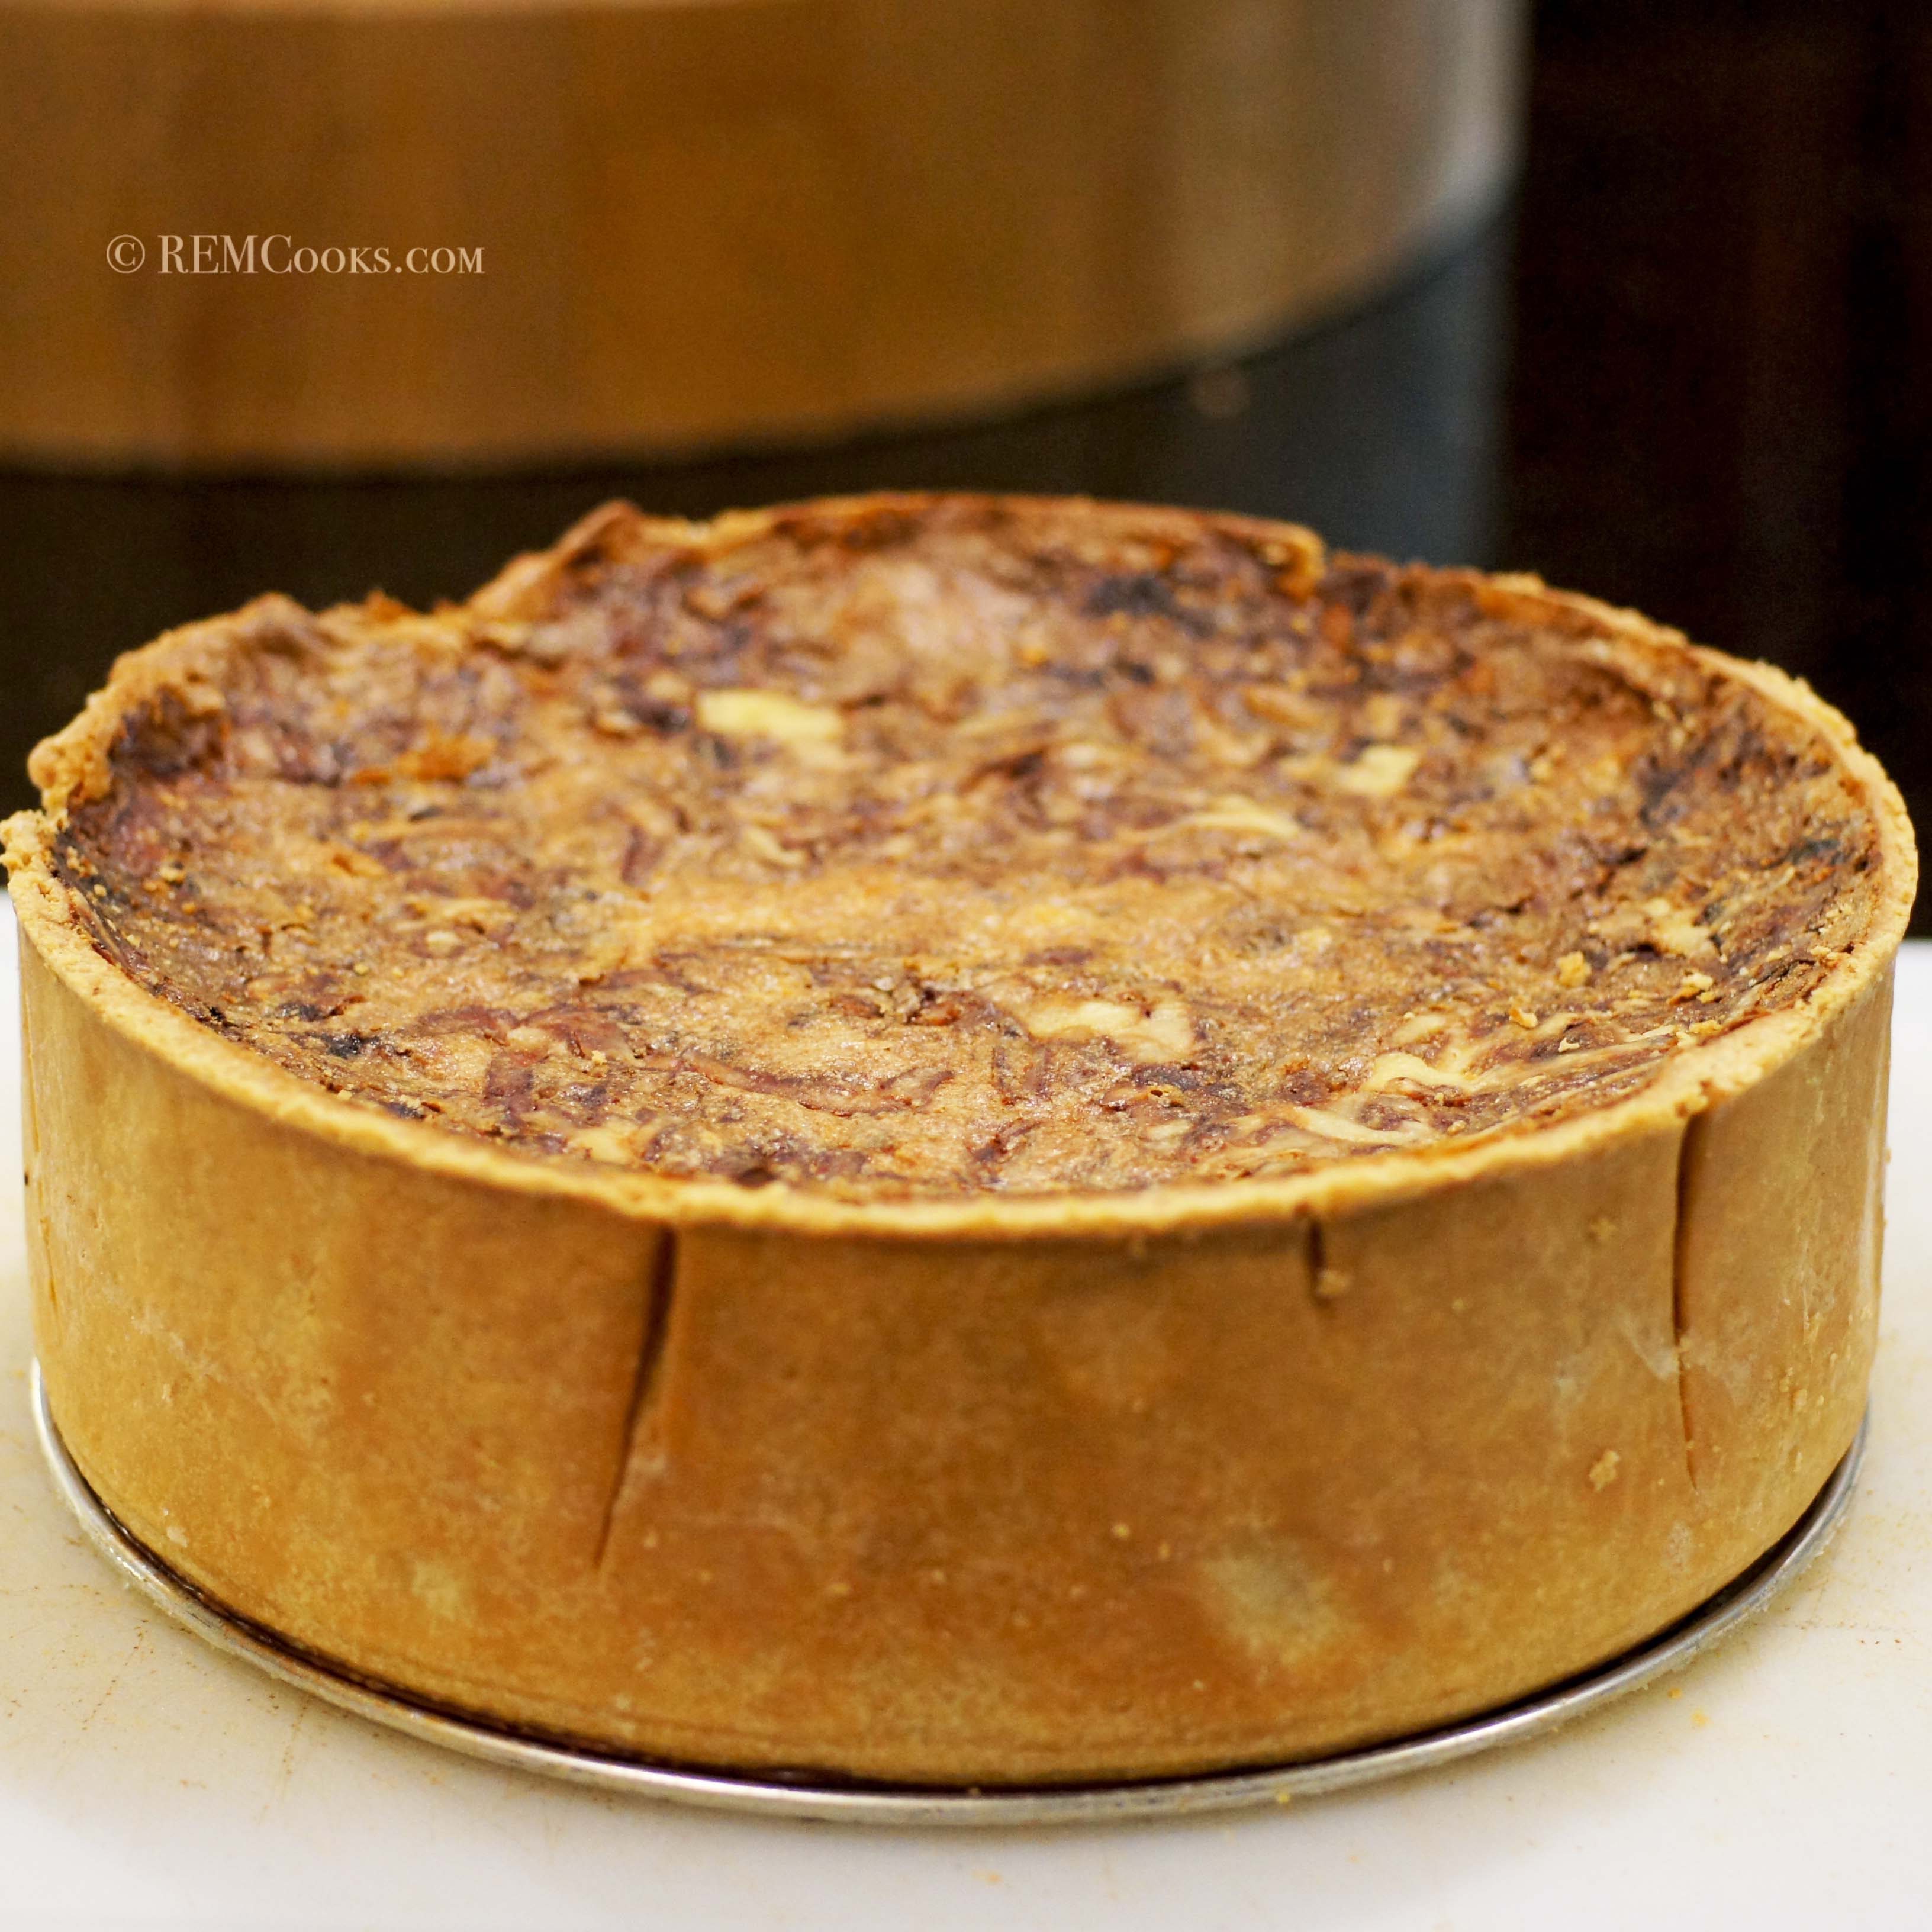 Thomas Kellers Insanely Delicious Quiche Lorraine